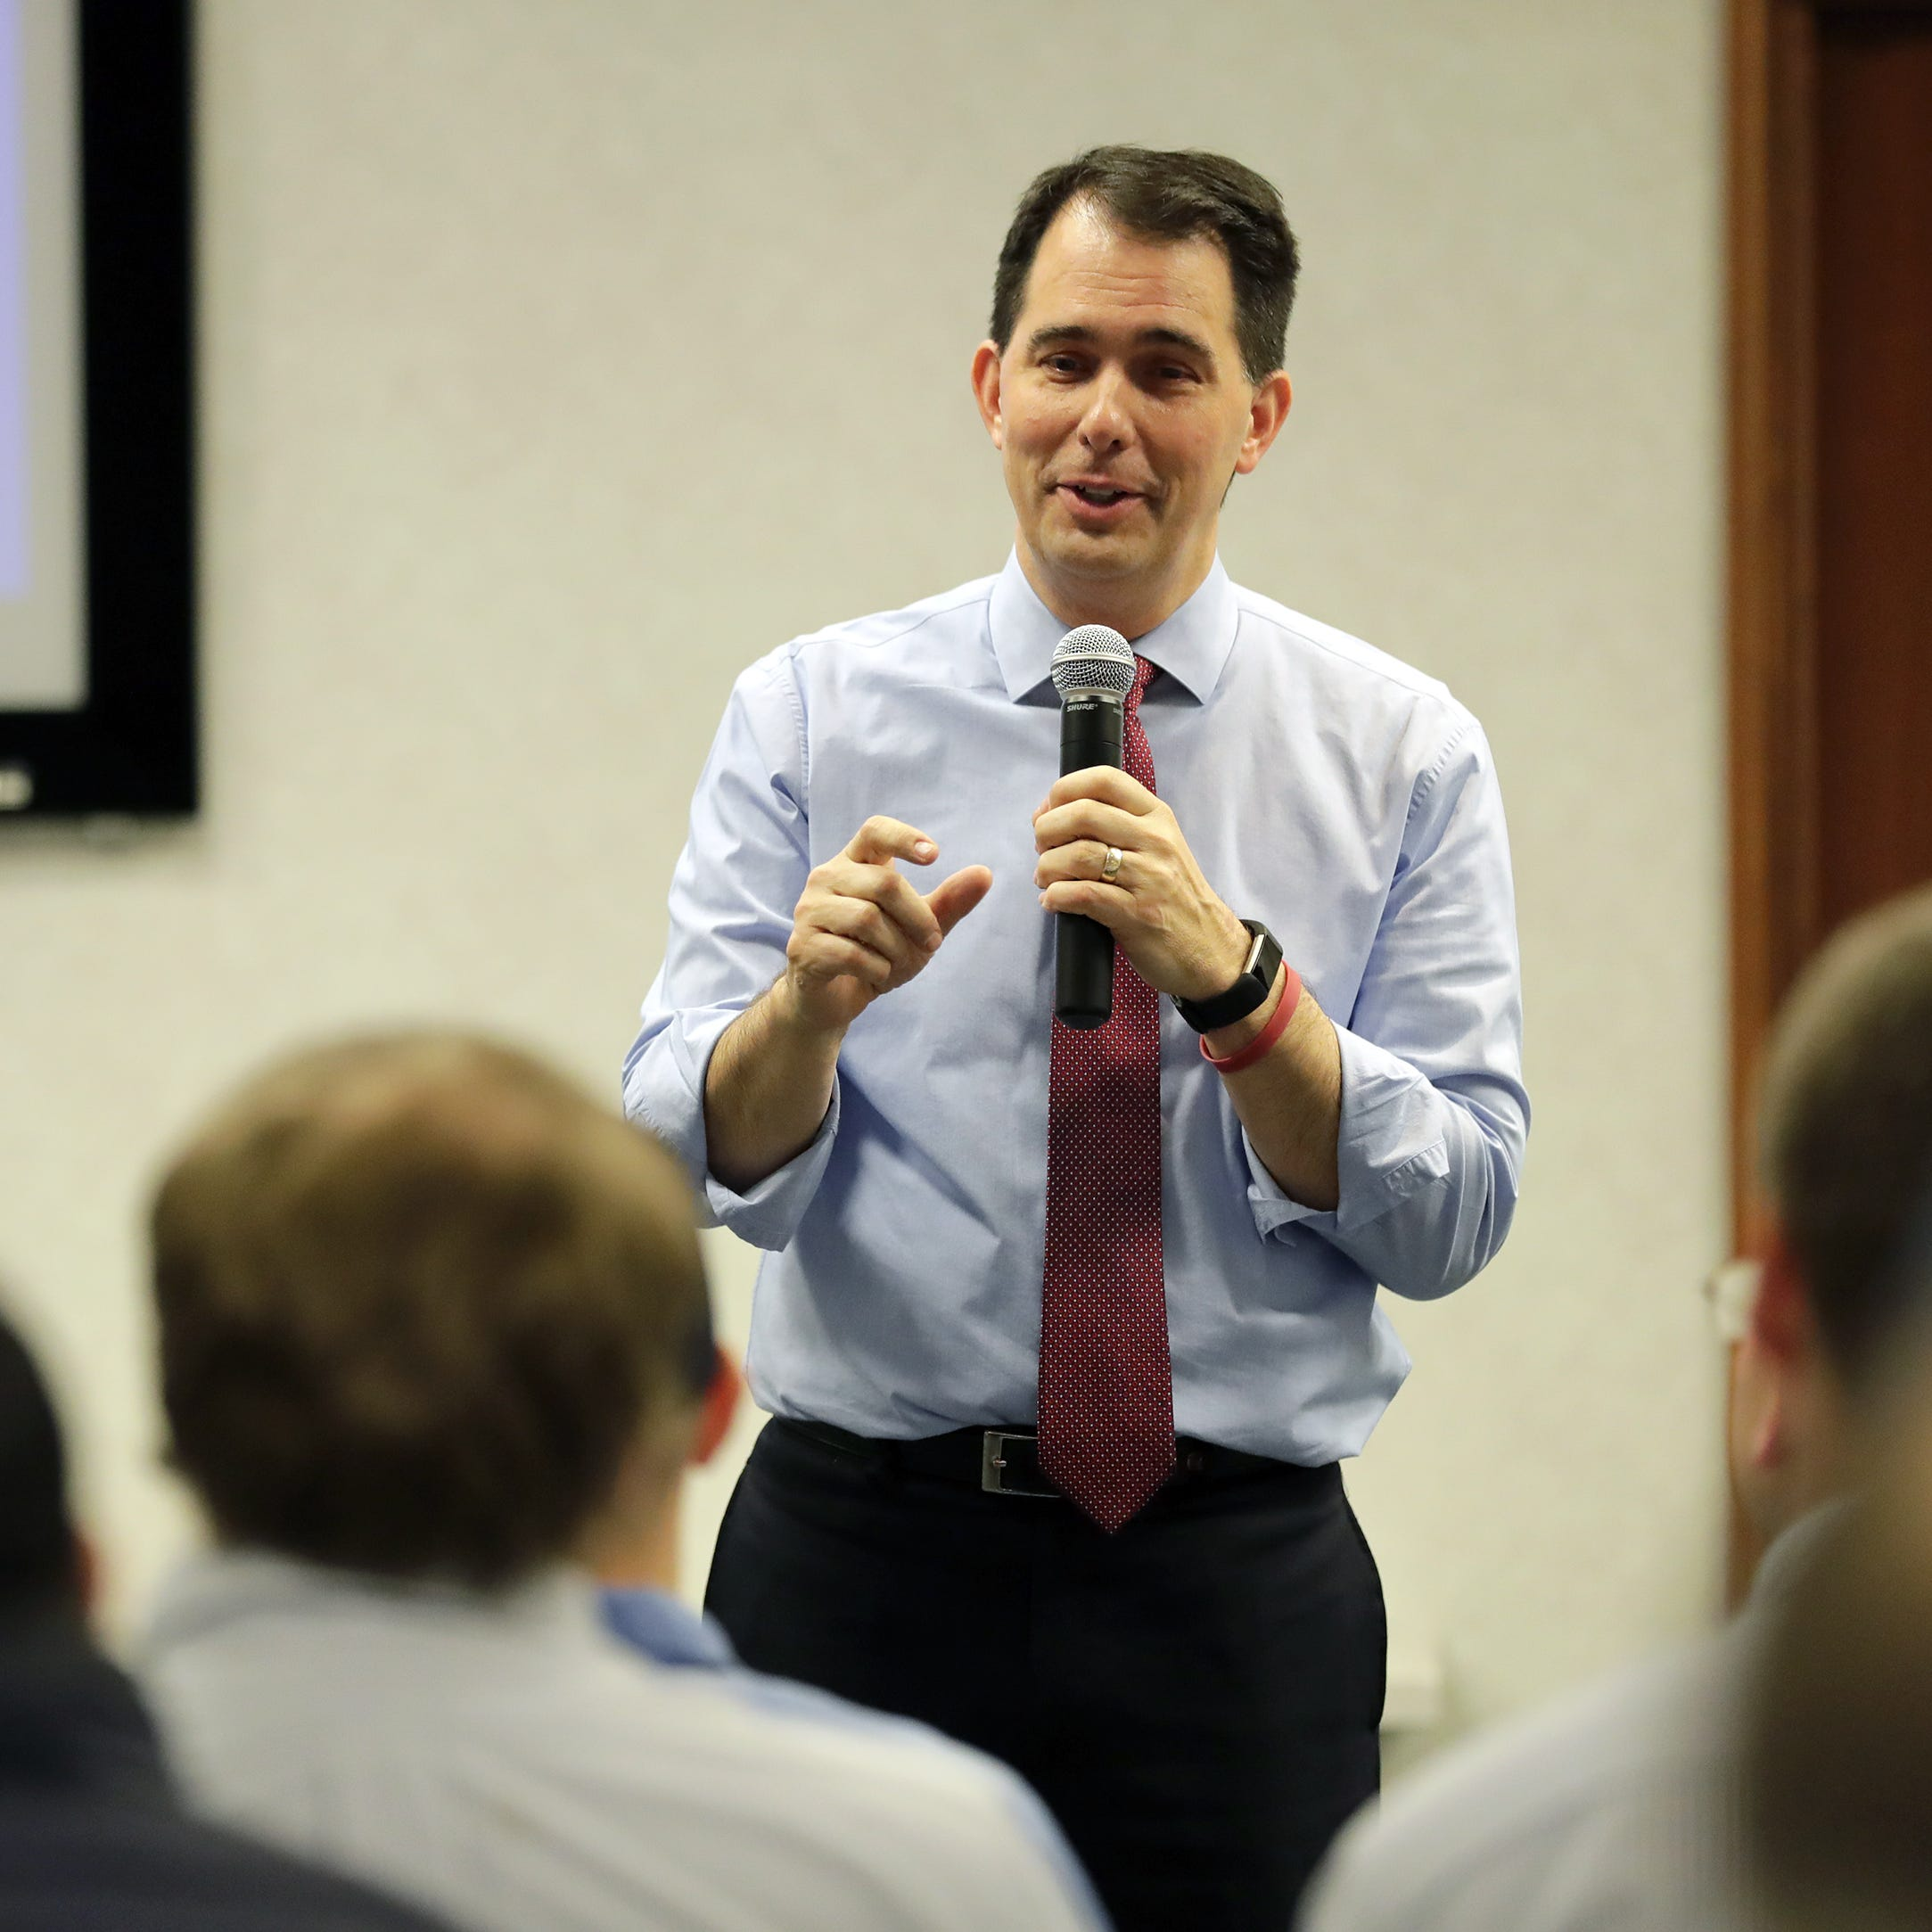 Walker hails $28M deal to keep K-C's Cold Spring plant open: 'I want this to be my legacy'